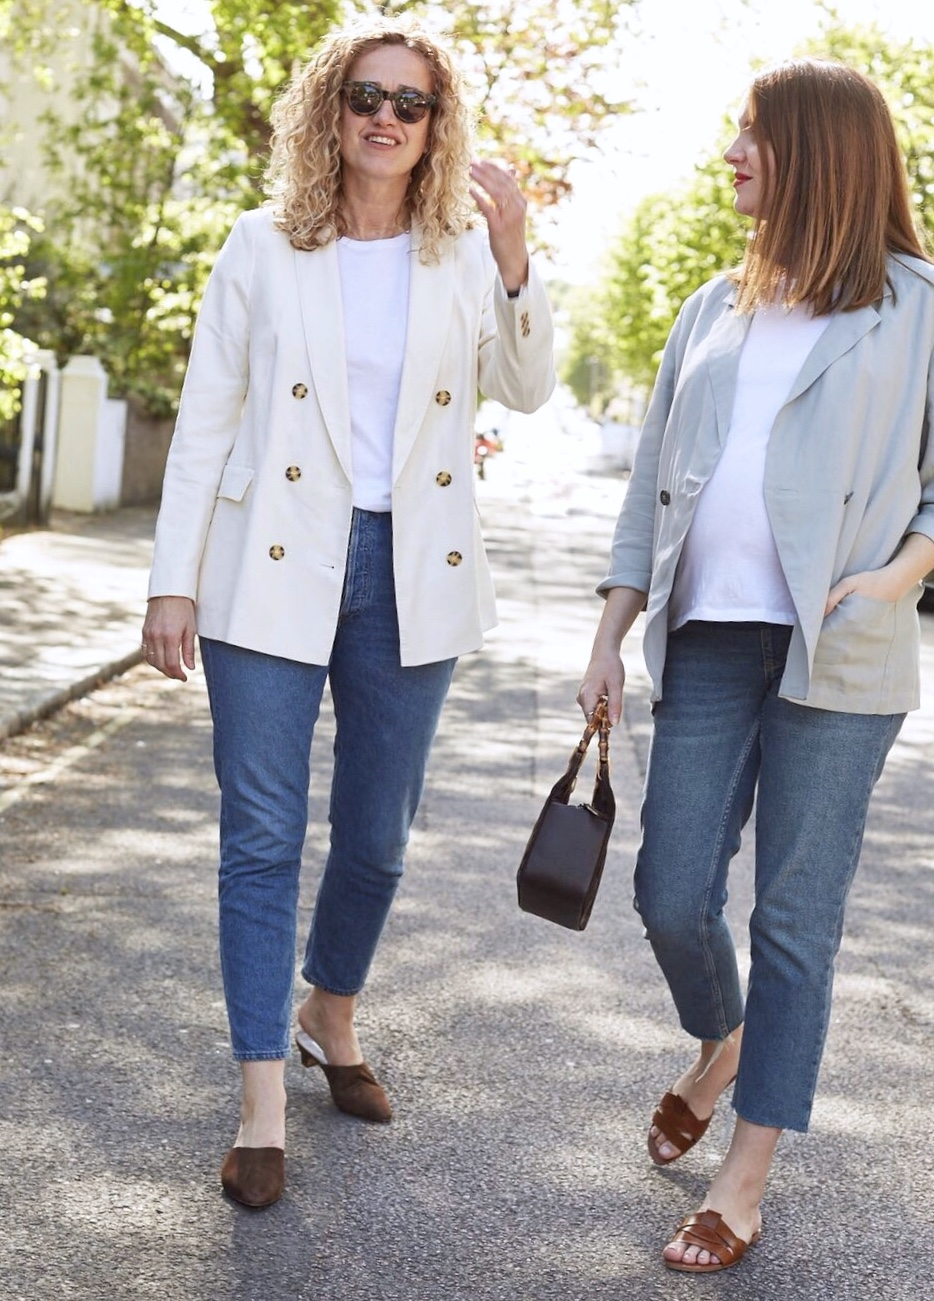 Wendy - blazer M&S sold out similar here, Dani - blazer  GREAT PLAINS was £95 now £50